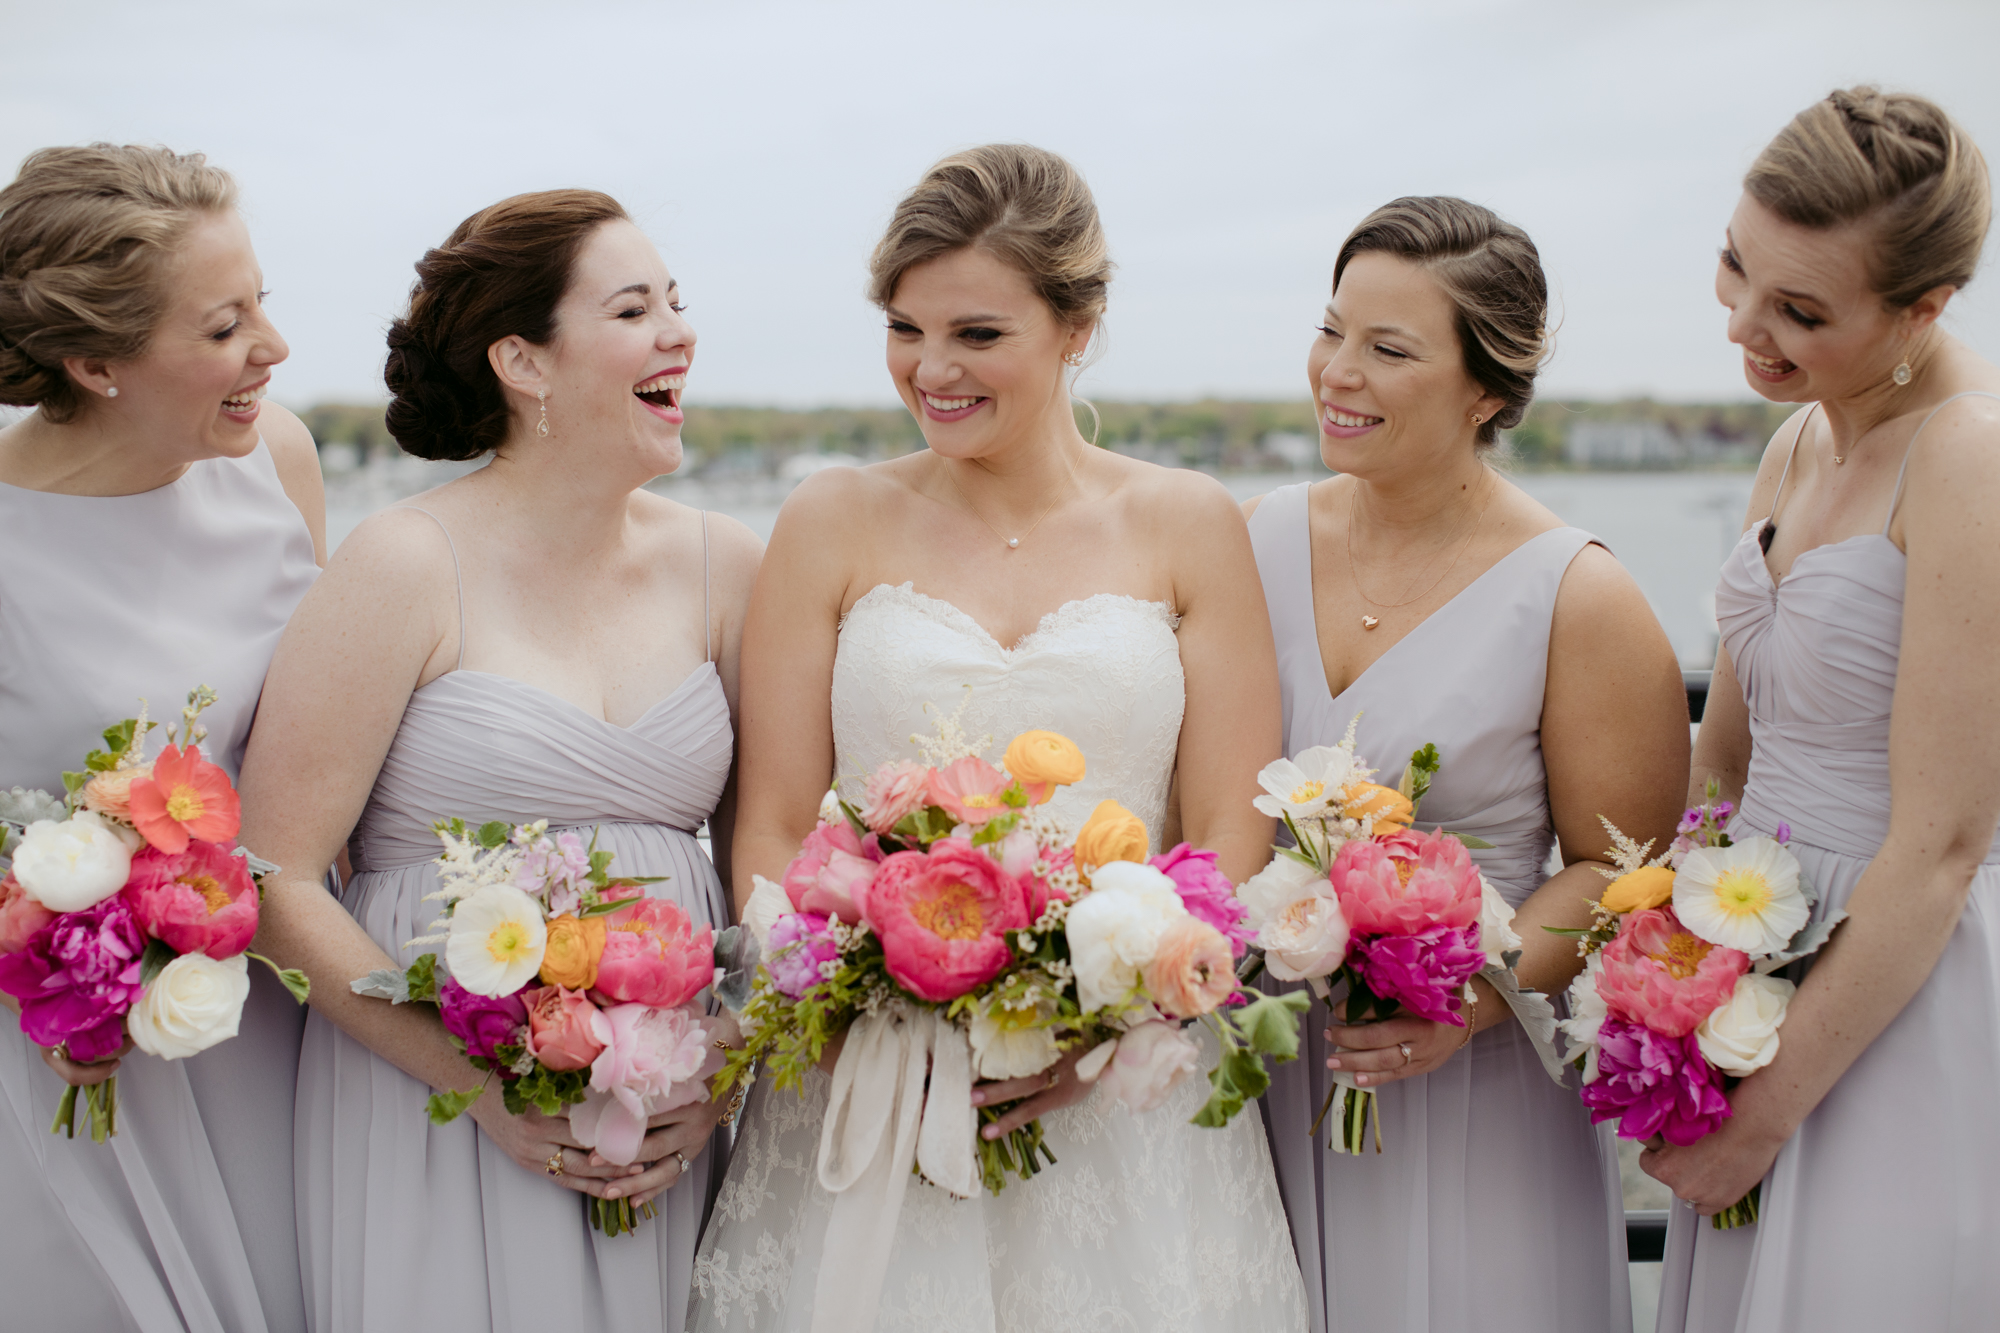 Kara_Jamie_Ocean_gateway_wedding_portland_maine_003.jpg